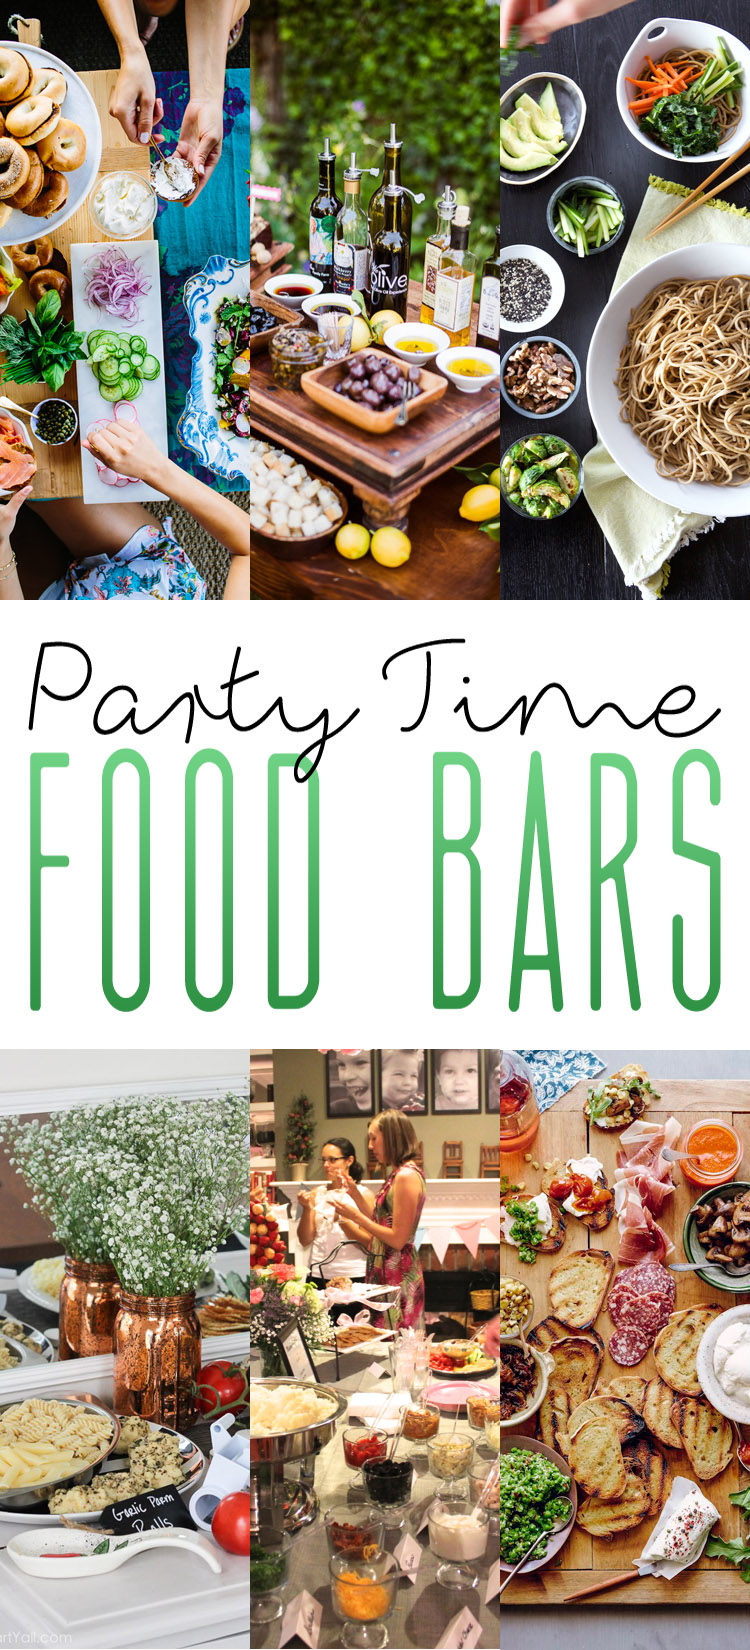 Party time food bars the cottage market for Bash bash food bar vodice